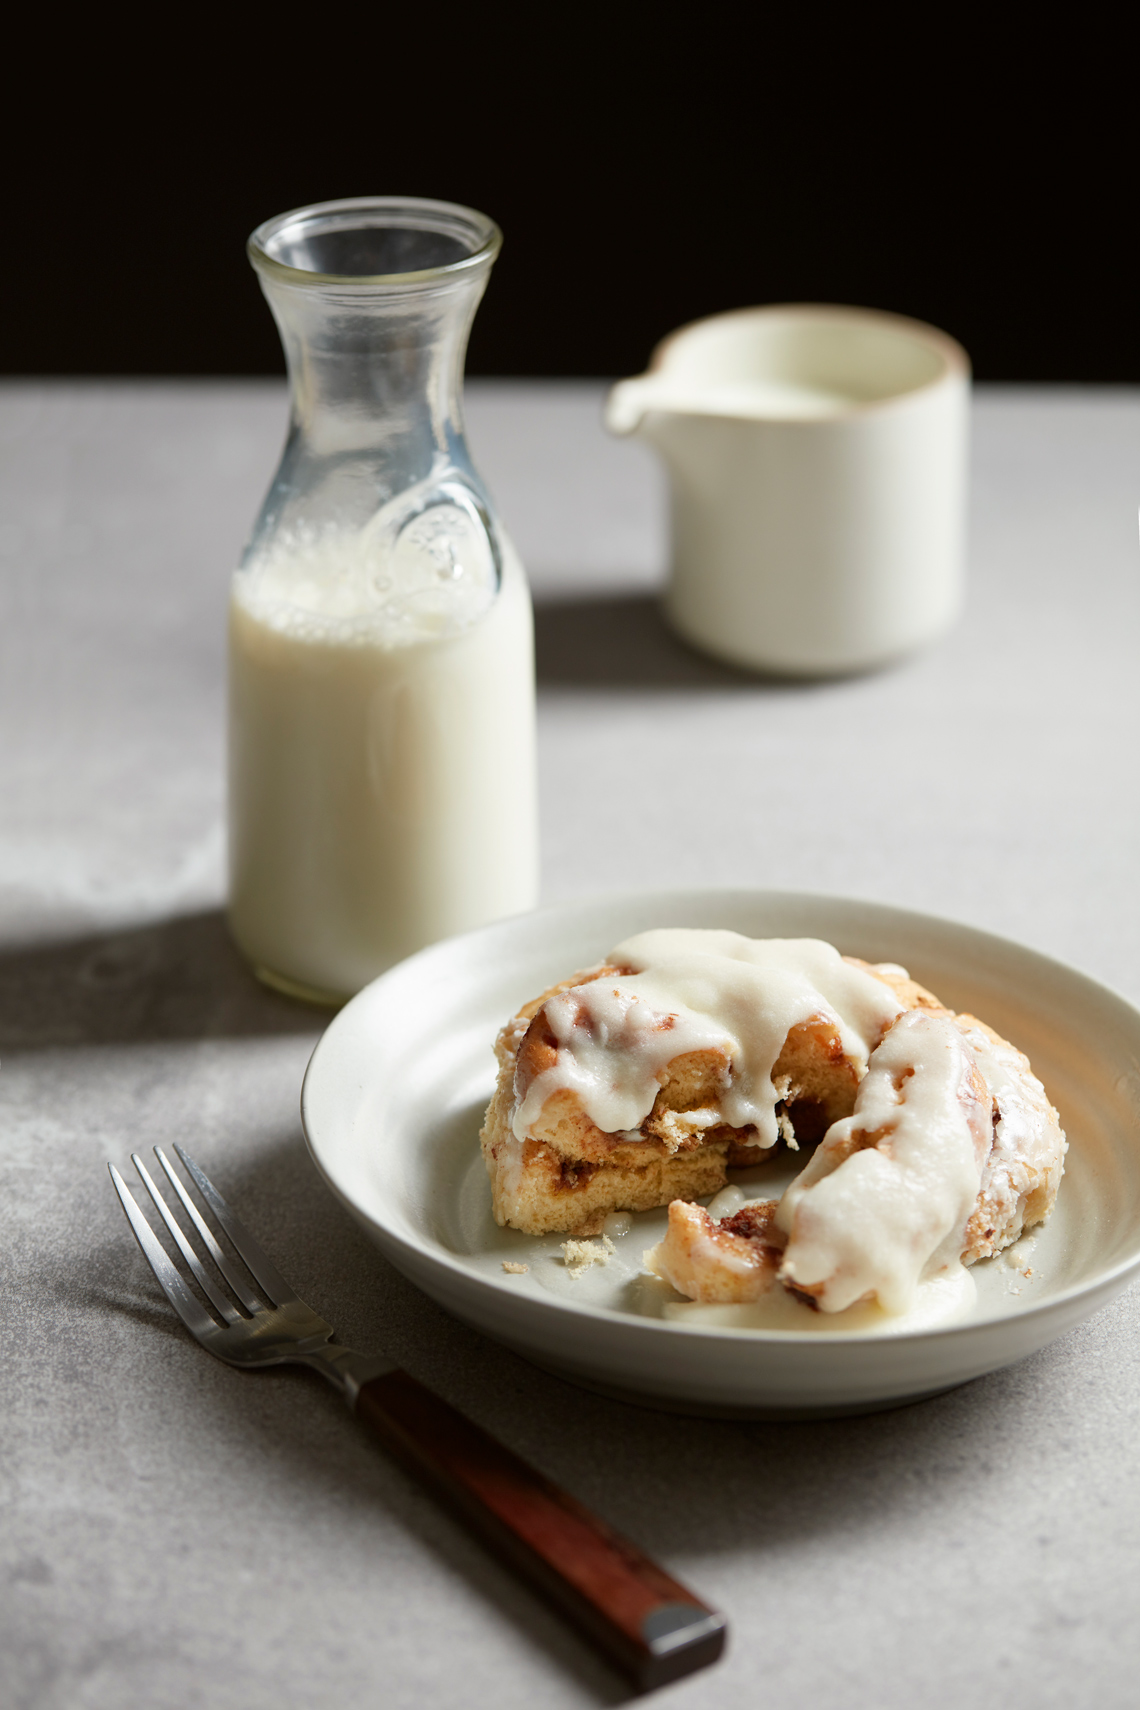 Cinnamon-Roll-with-Milk-web